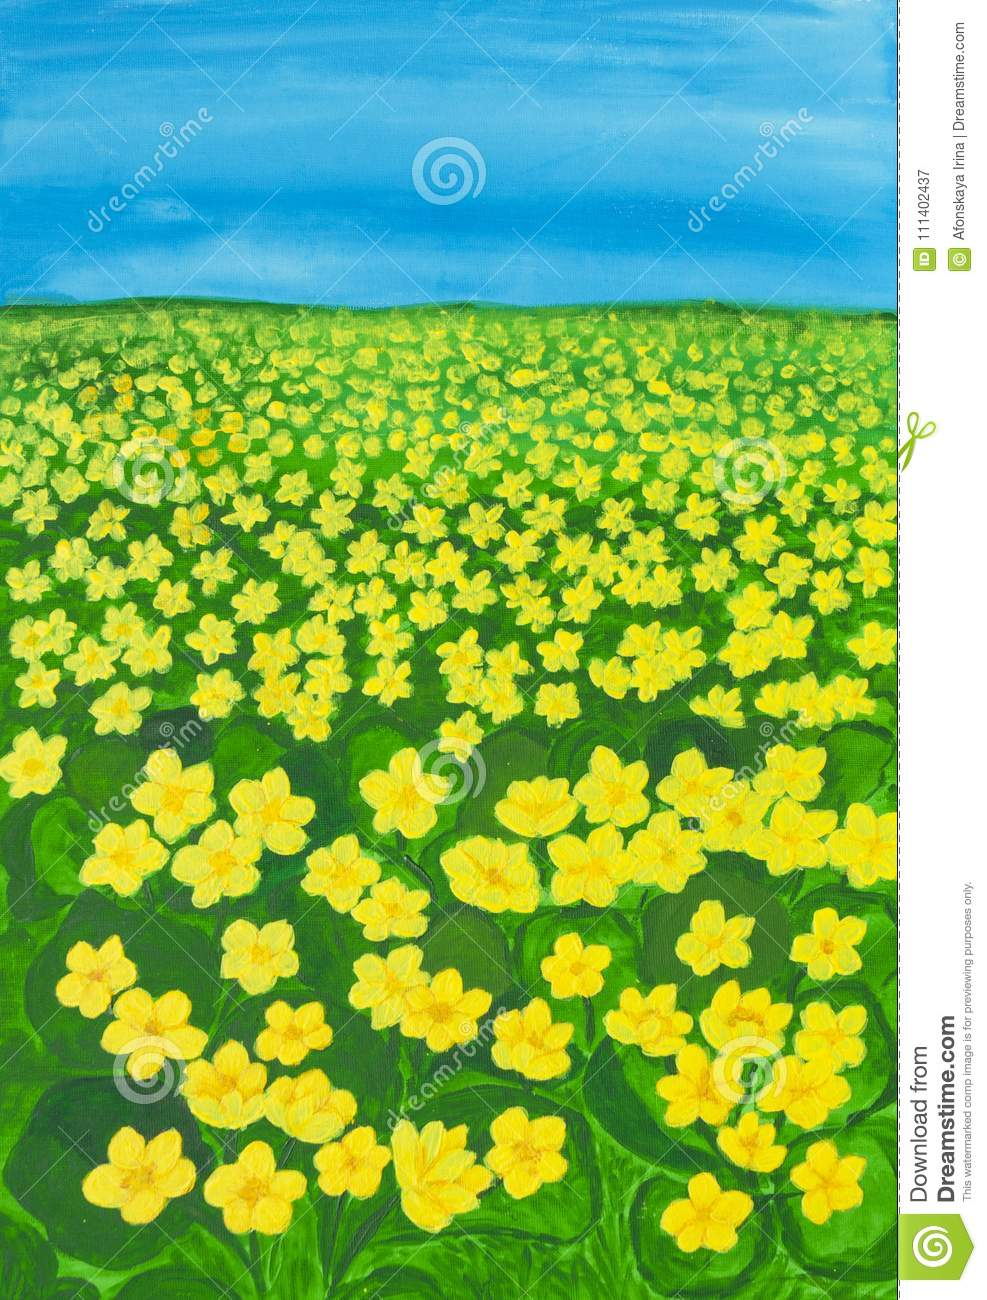 Meadow with buttercups stock illustration illustration of spring meadow with many first spring flowers yellow buttercupslatin name ranunculus illustration painting acrylic on canvas mightylinksfo